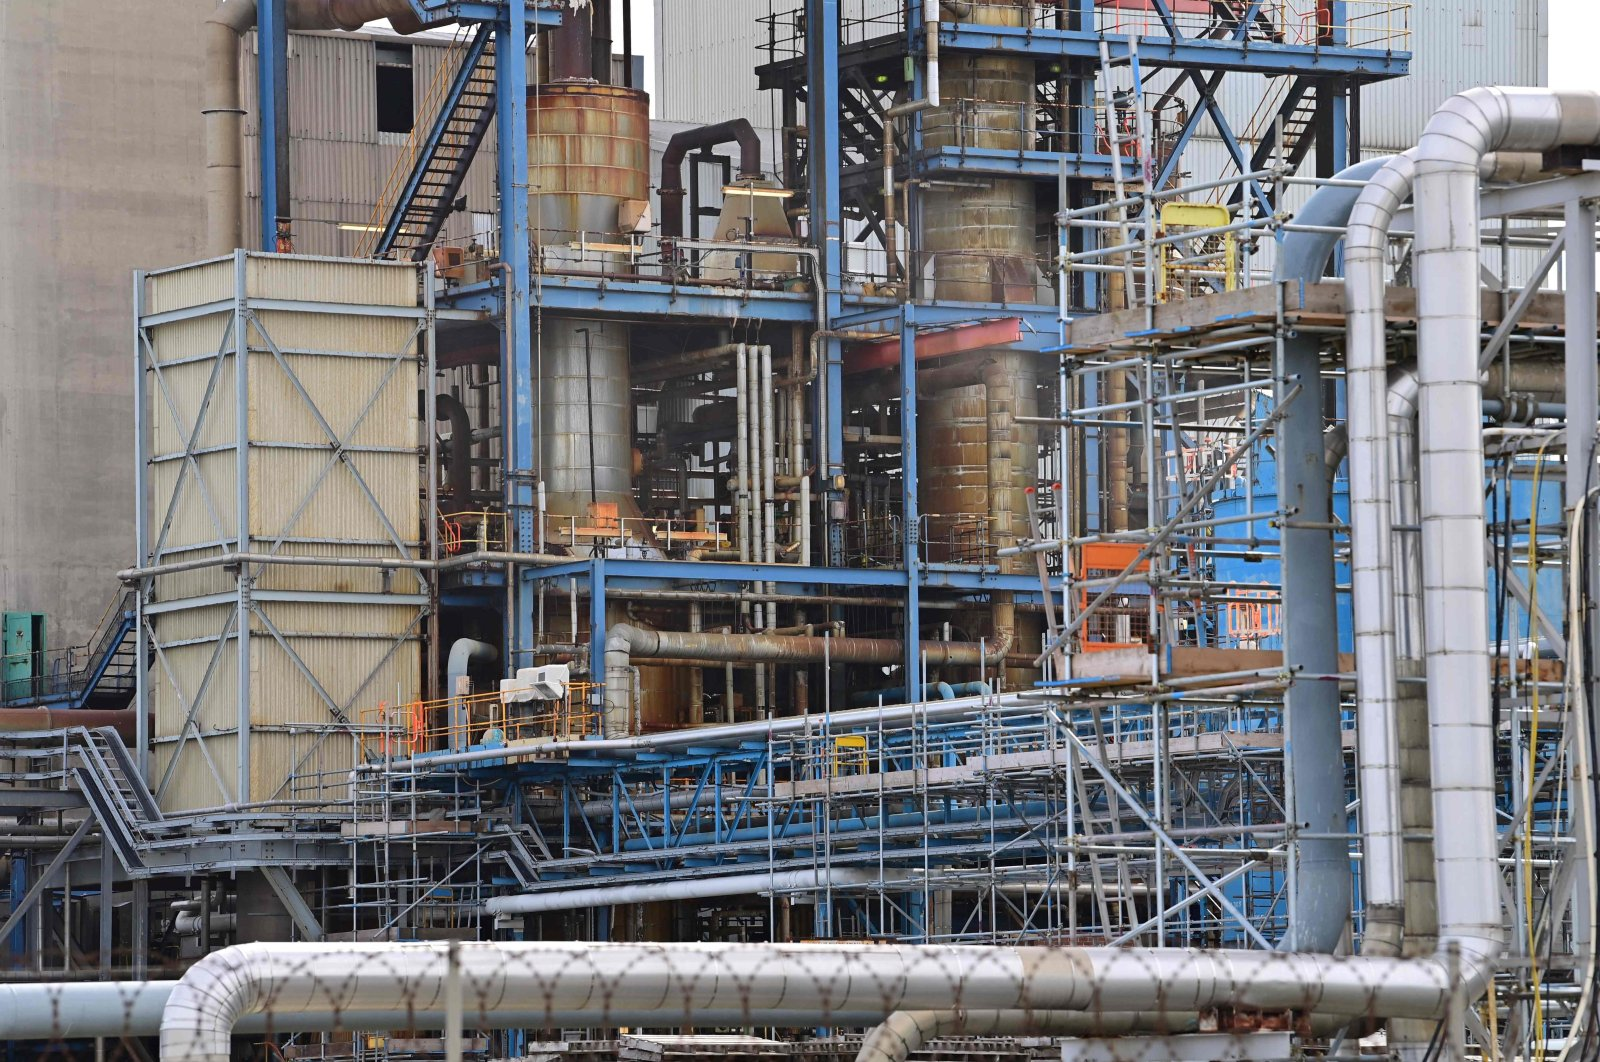 A view of CF Industries fertilizer plant in Stockton-on-Tees, northeast England, Sept. 21, 2021. (AFP Photo)